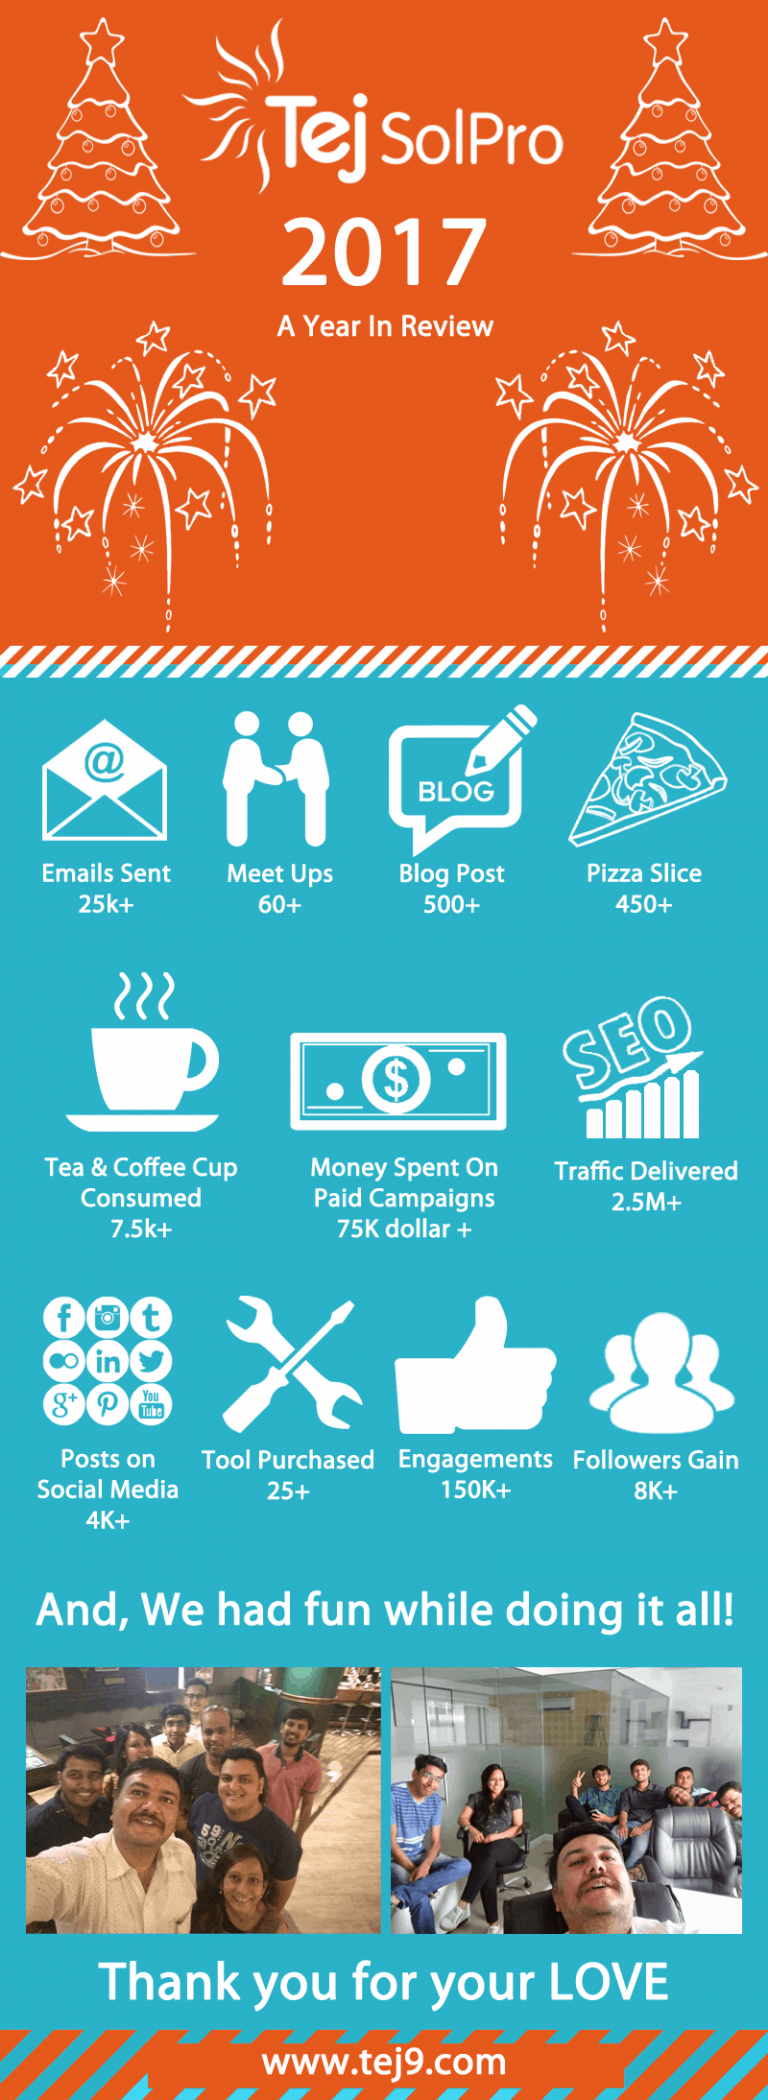 Tej Solpro's 2017 Year in Review [Infographic]